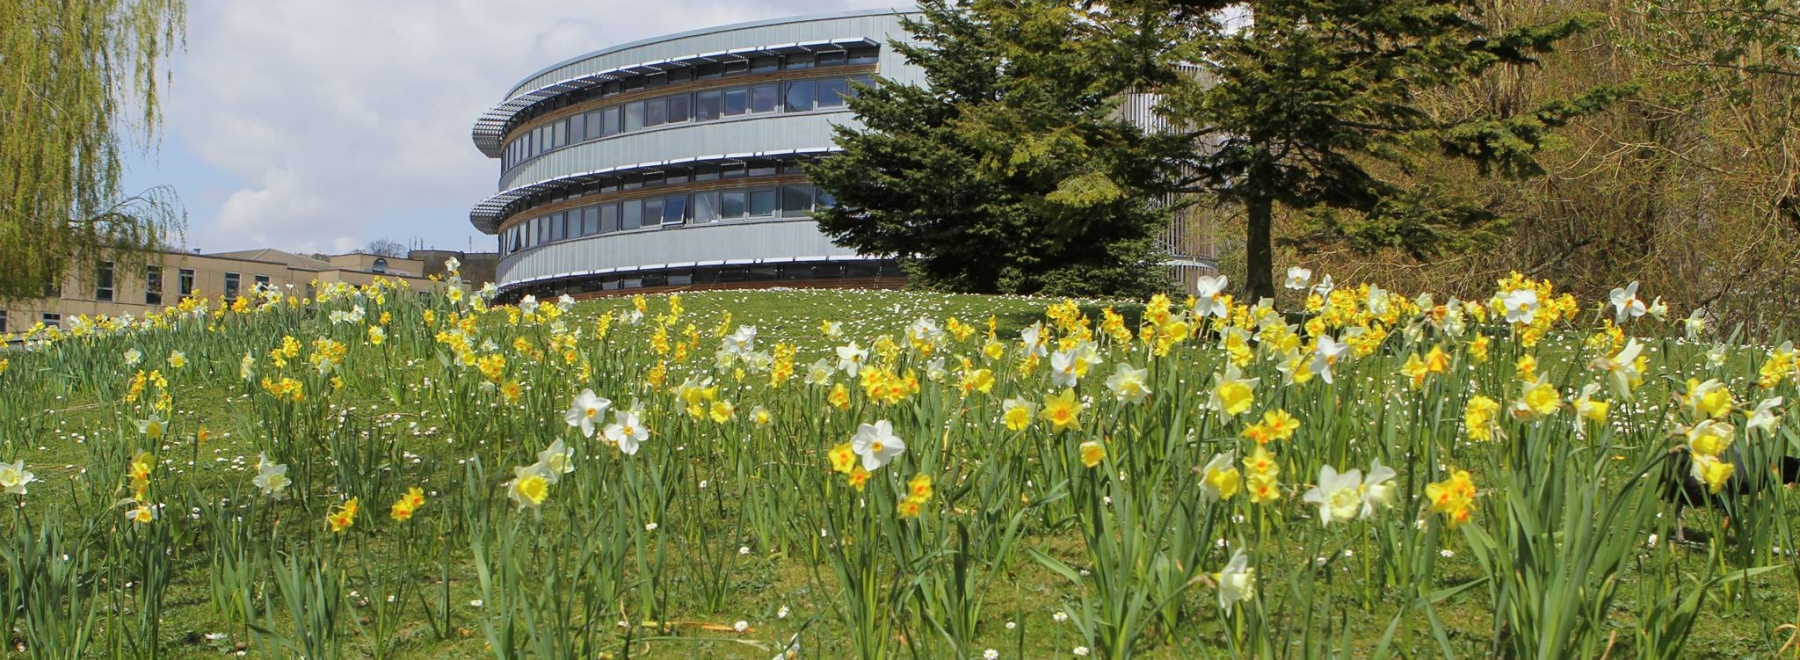 The University of York header